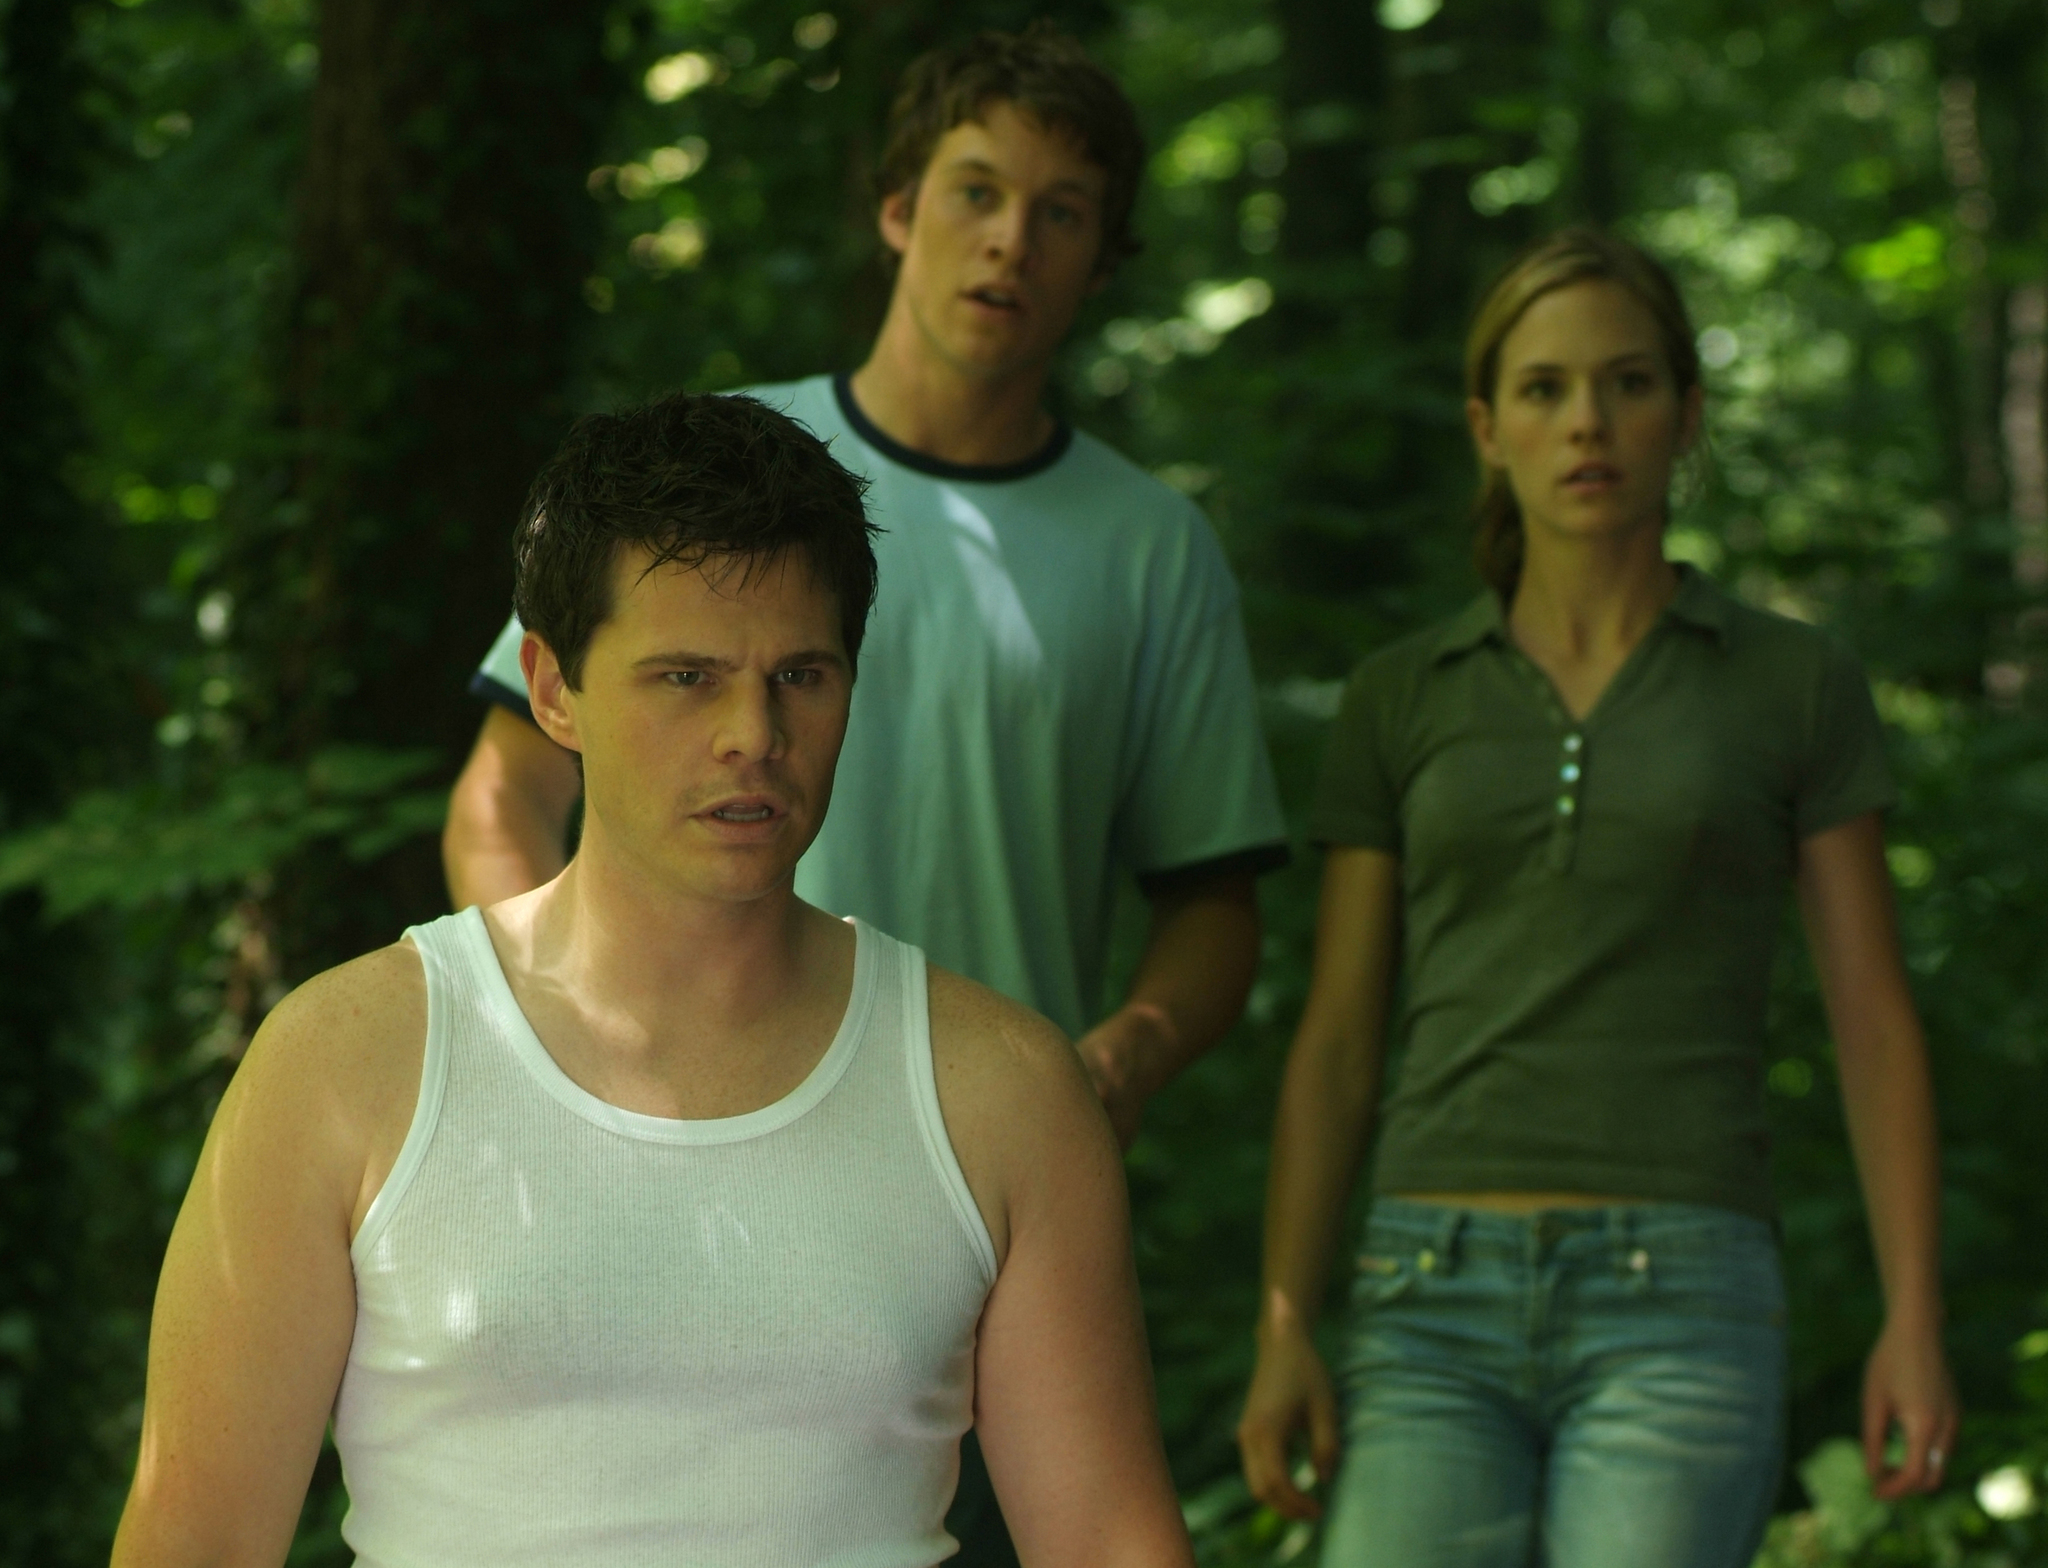 Ian Reed Kesler, Alicia Ziegler, and Chad Michael Collins in Lake Placid 2 (2007)